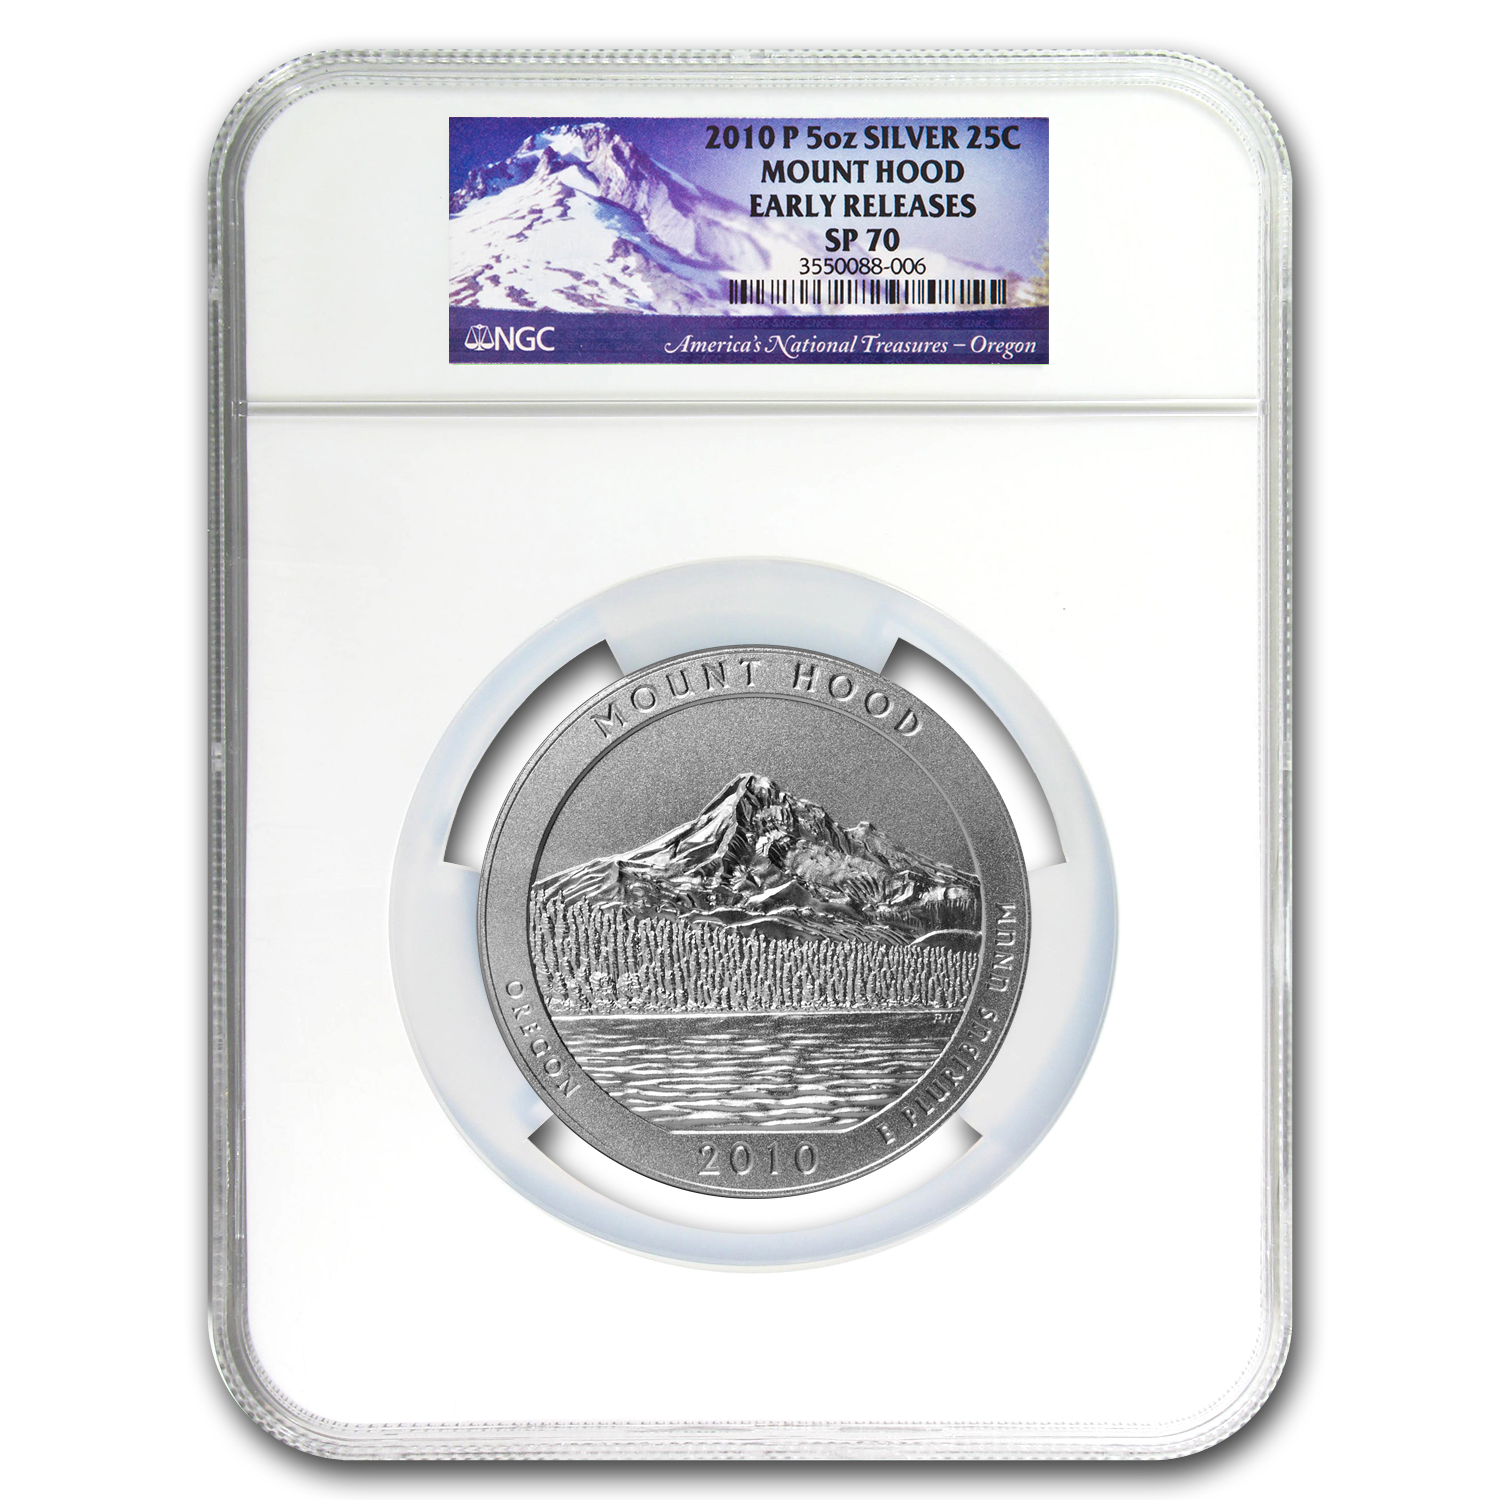 2010-P 5 oz Silver ATB Mount Hood NGC SP-70 Early Releases